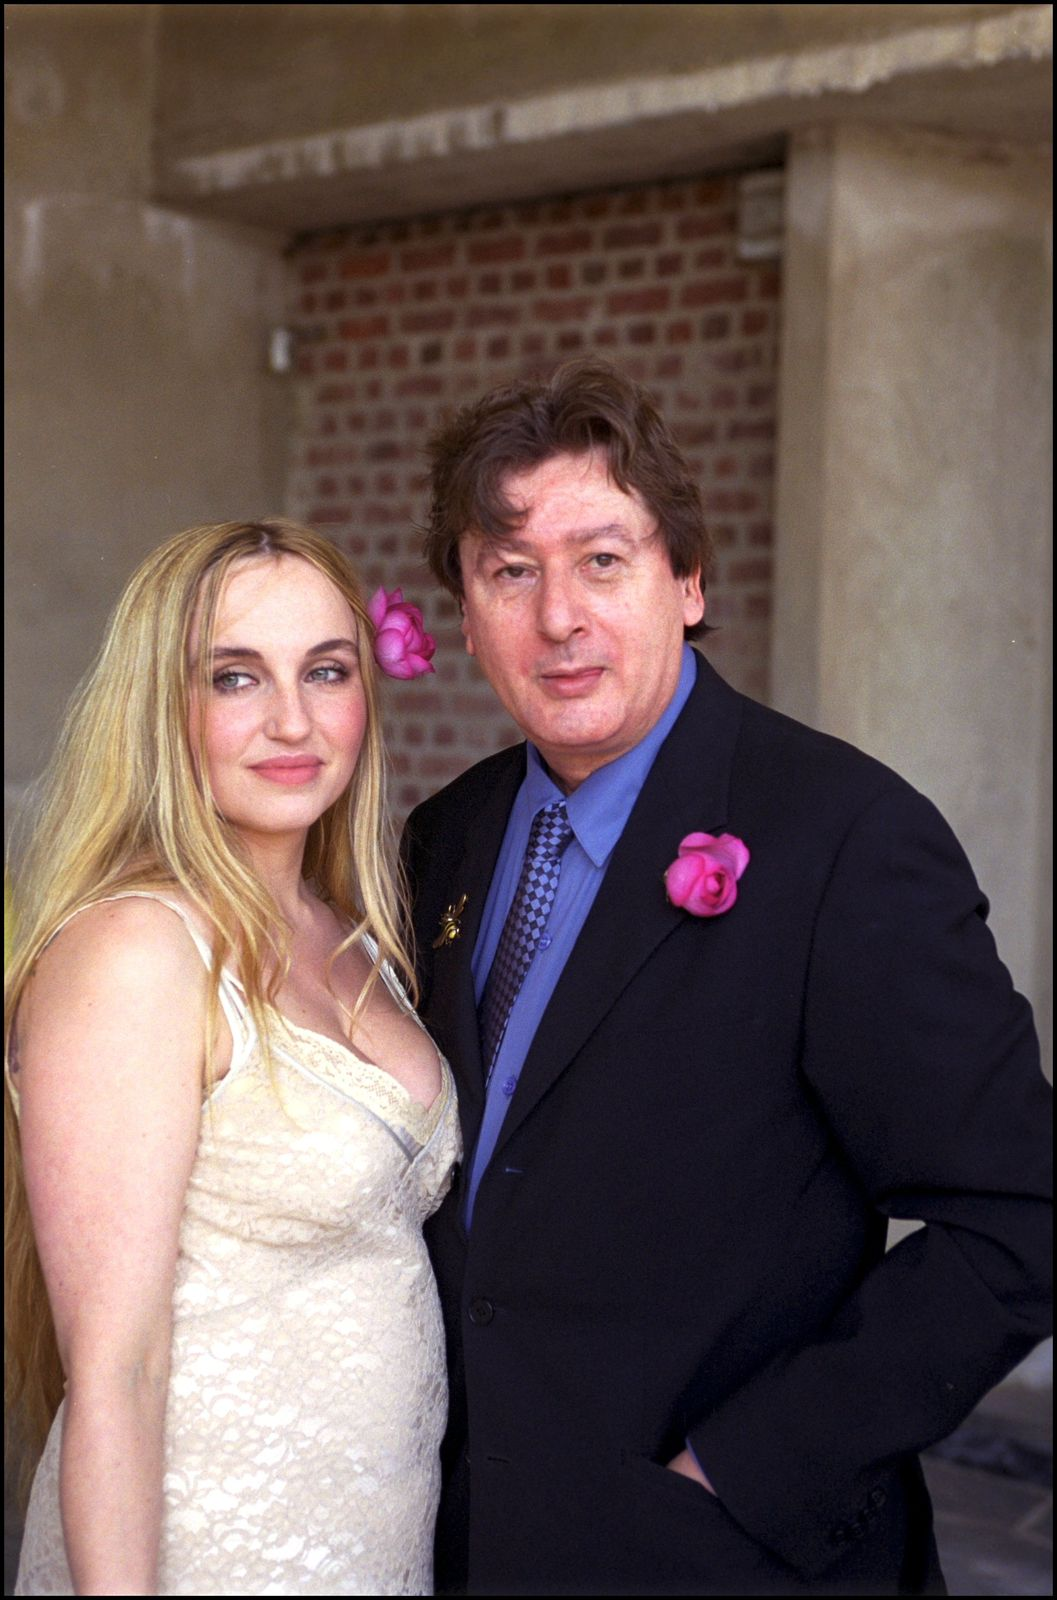 Le chanteur Alain Bashung et sa femme Chloé Mons | Photo : Getty Images